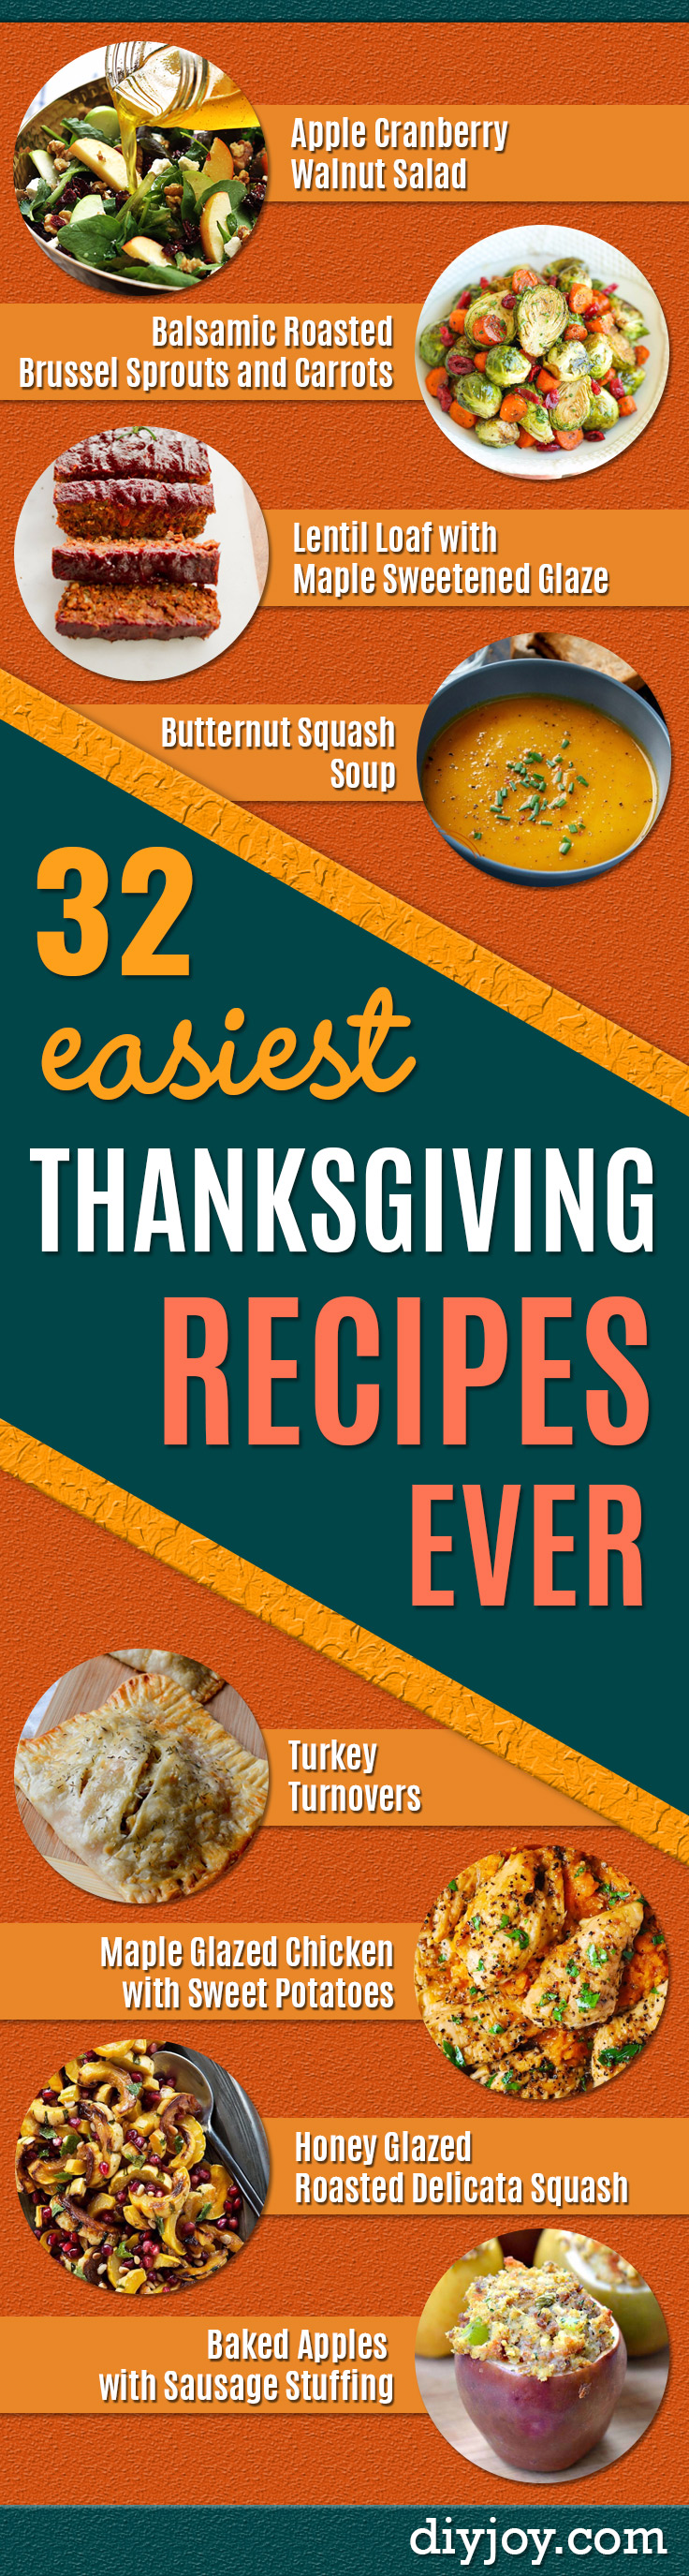 Easy Thanksgiving Recipes - Best Simple and Quick Recipe Ideas for Thanksgiving Dinner. Cranberries, Turkey, Gravy, Sauces, Sides, Vegetables, Dips and Desserts - DIY Cooking Tutorials With Step by Step Instructions - Ideas for A Crowd, Parties and Last Minute Recipes http://diyjoy.com/easy-thanksgiving-recipes